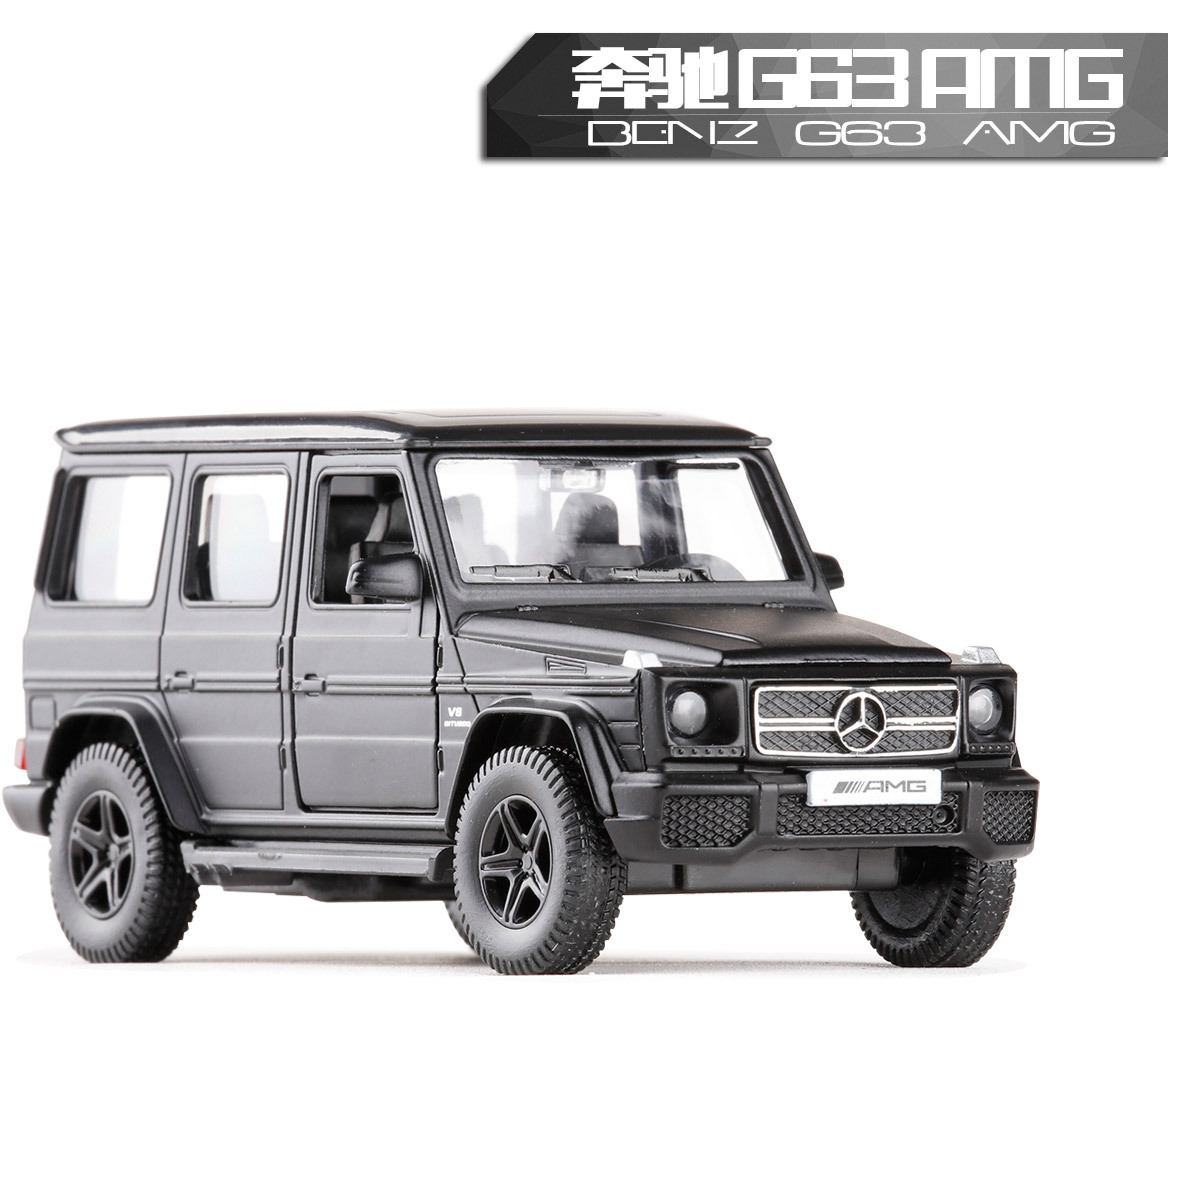 High Simulation RMZ City 1:36 Metal Benz AMG G63 Diecasts Model Toy Car Classical Alloy SUV Model Excellent For Children Gifts